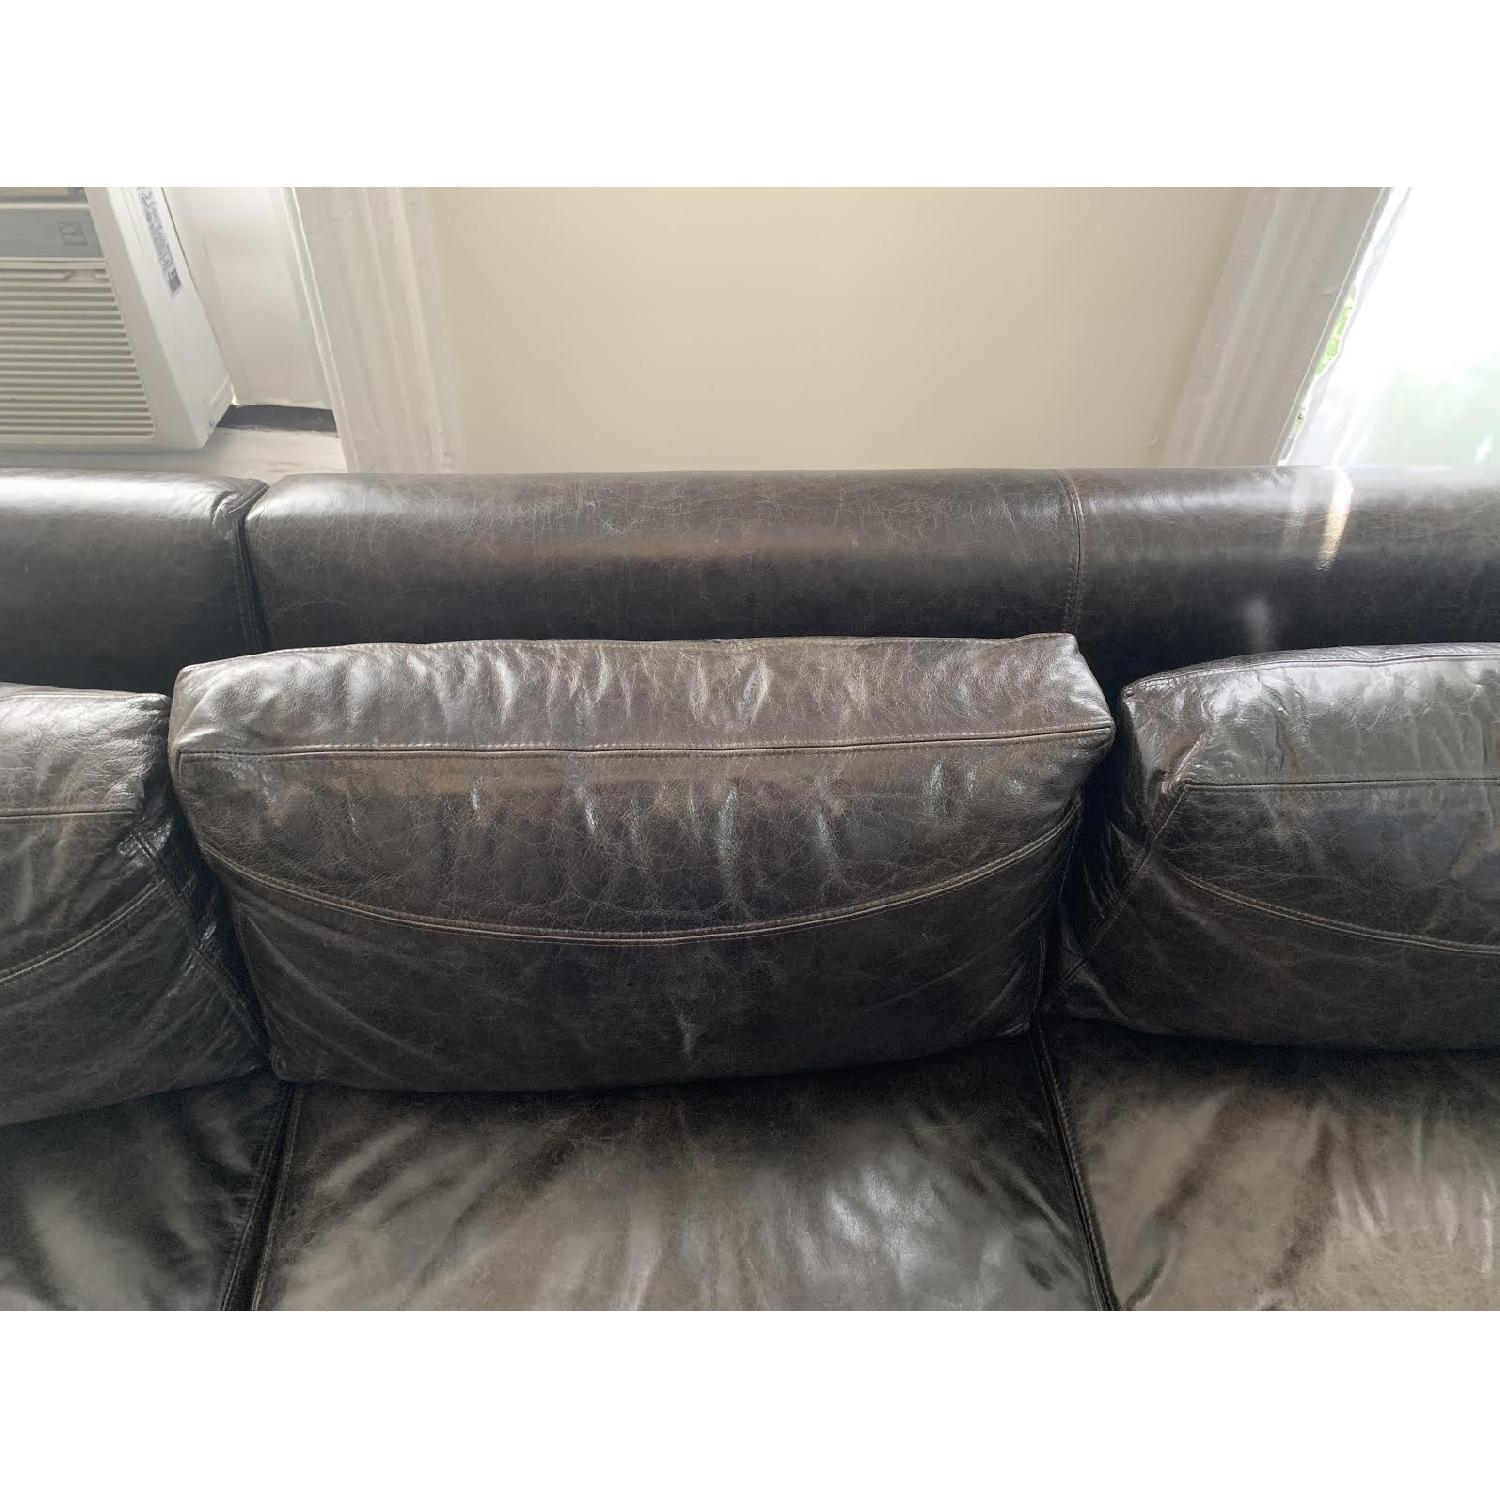 Black Leather Sectional Sofa - image-5